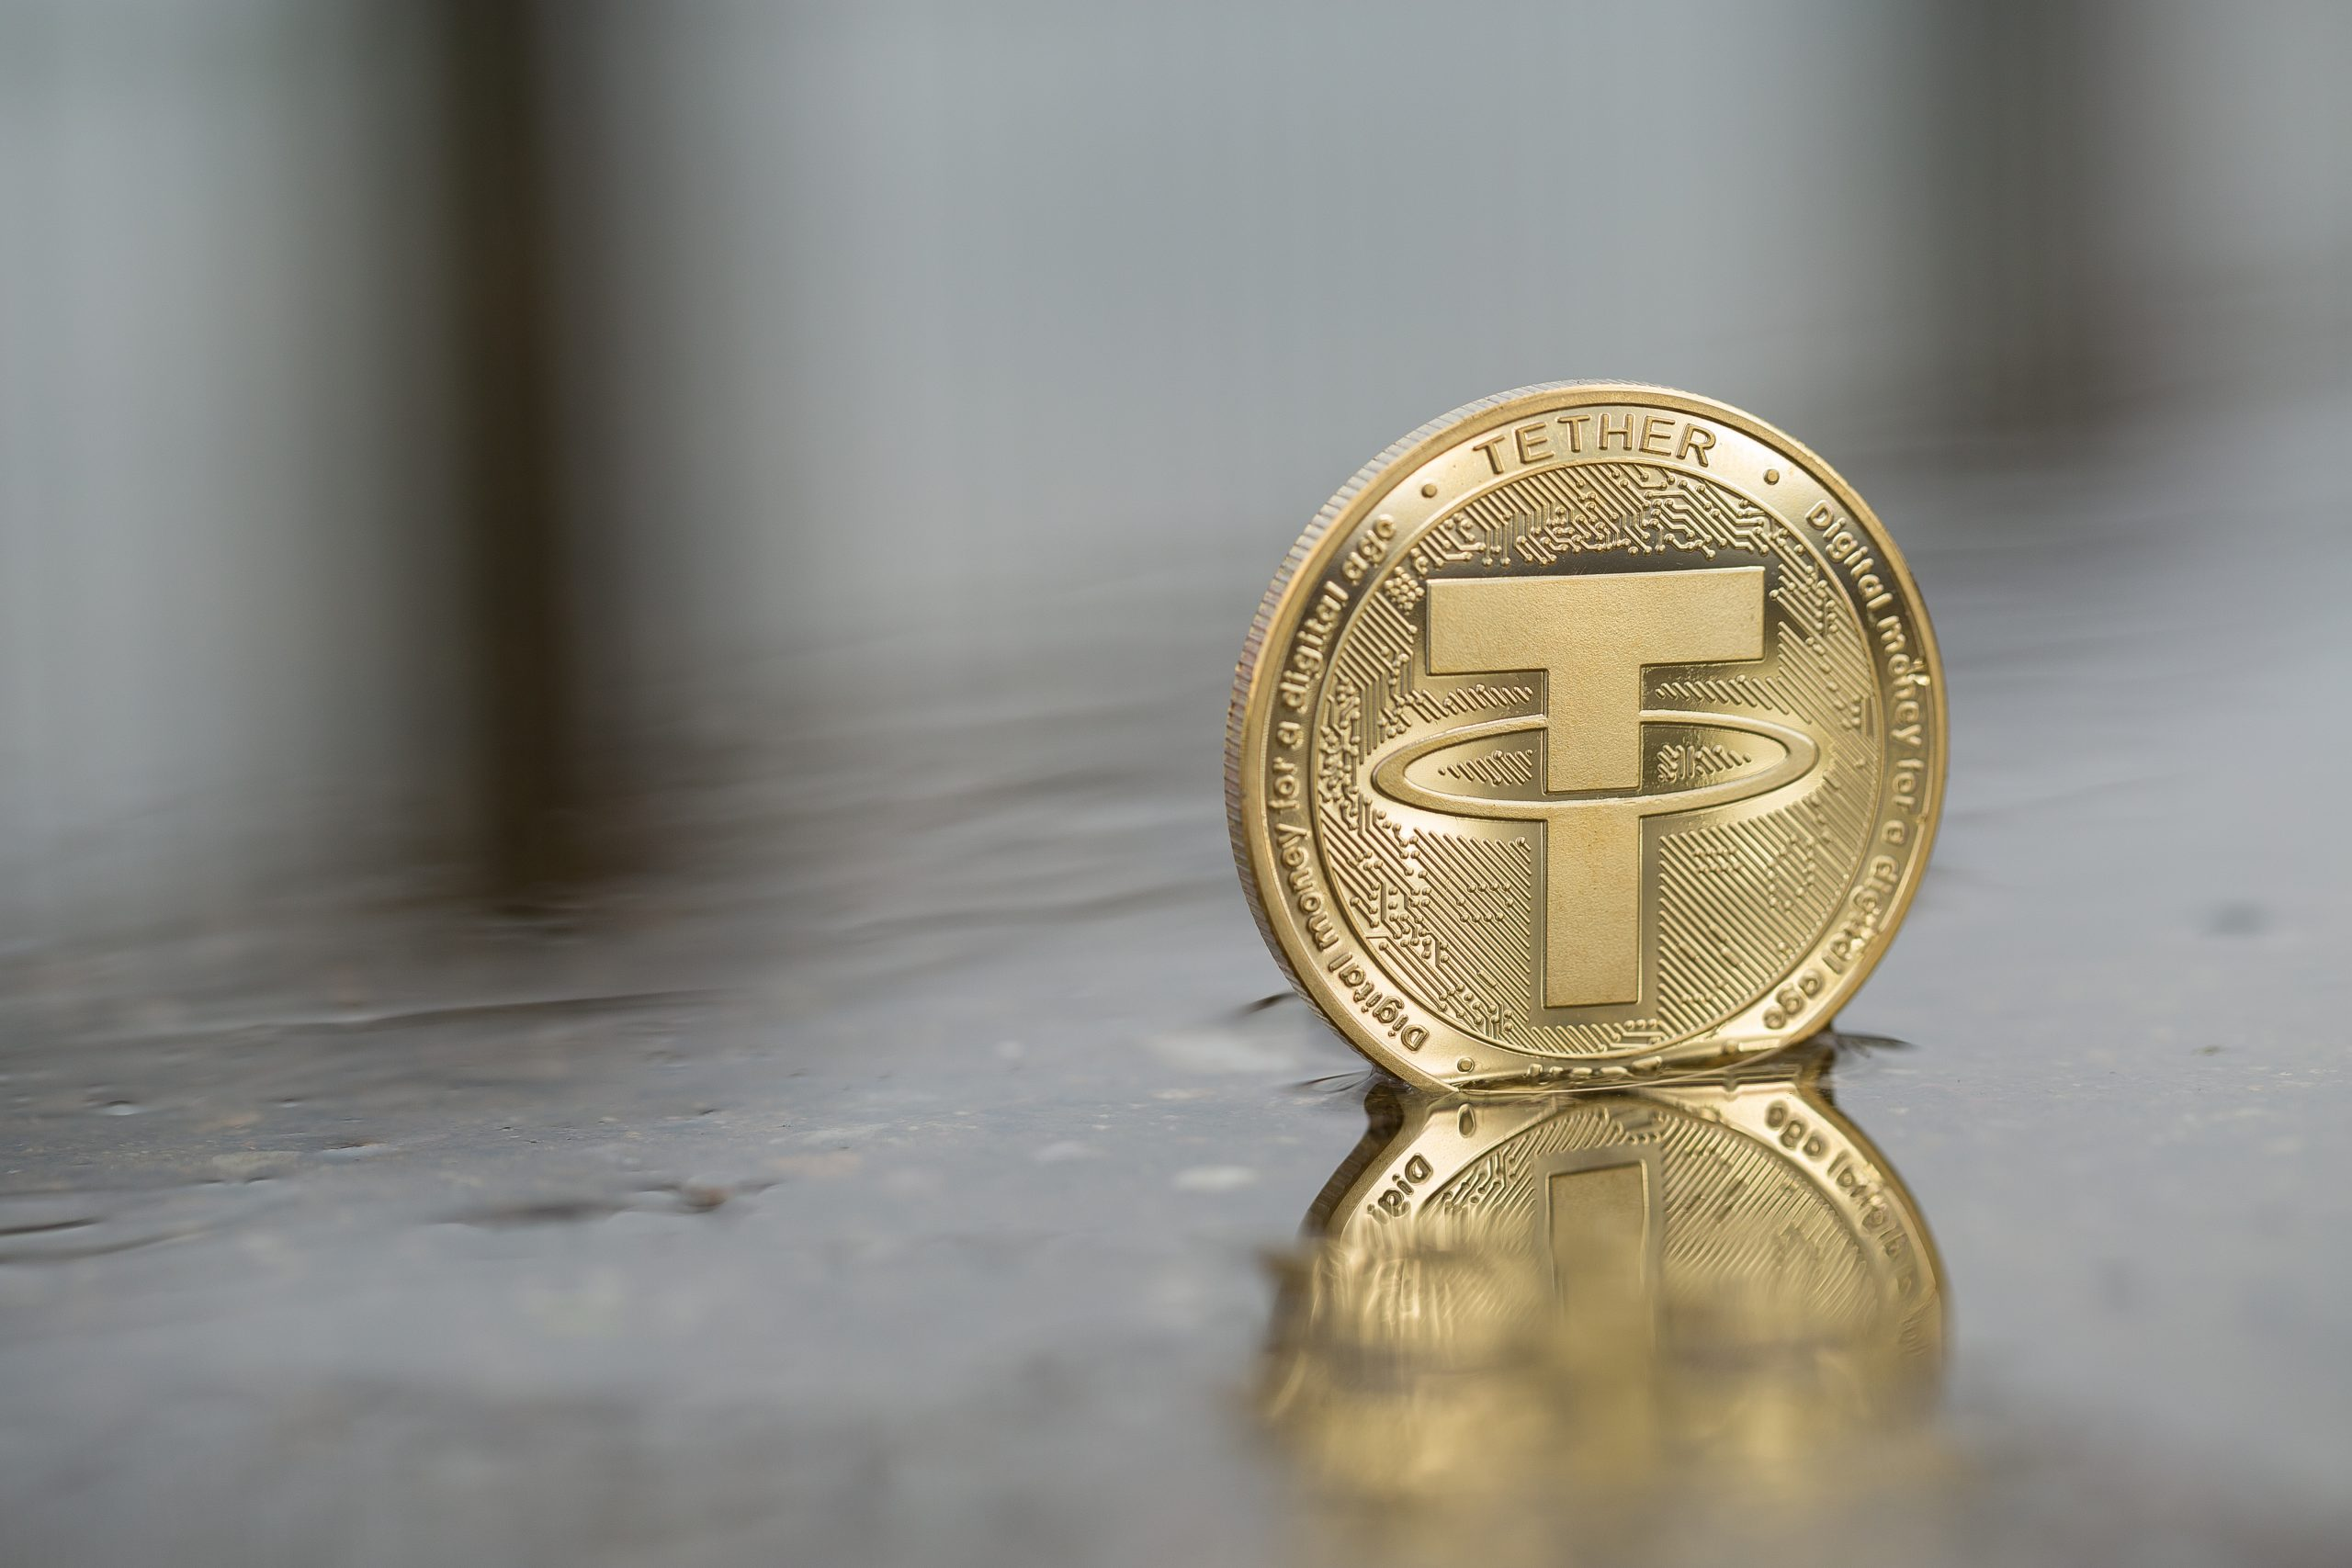 Is Tether Correct a Scam to Enrich Bitcoin Traders?